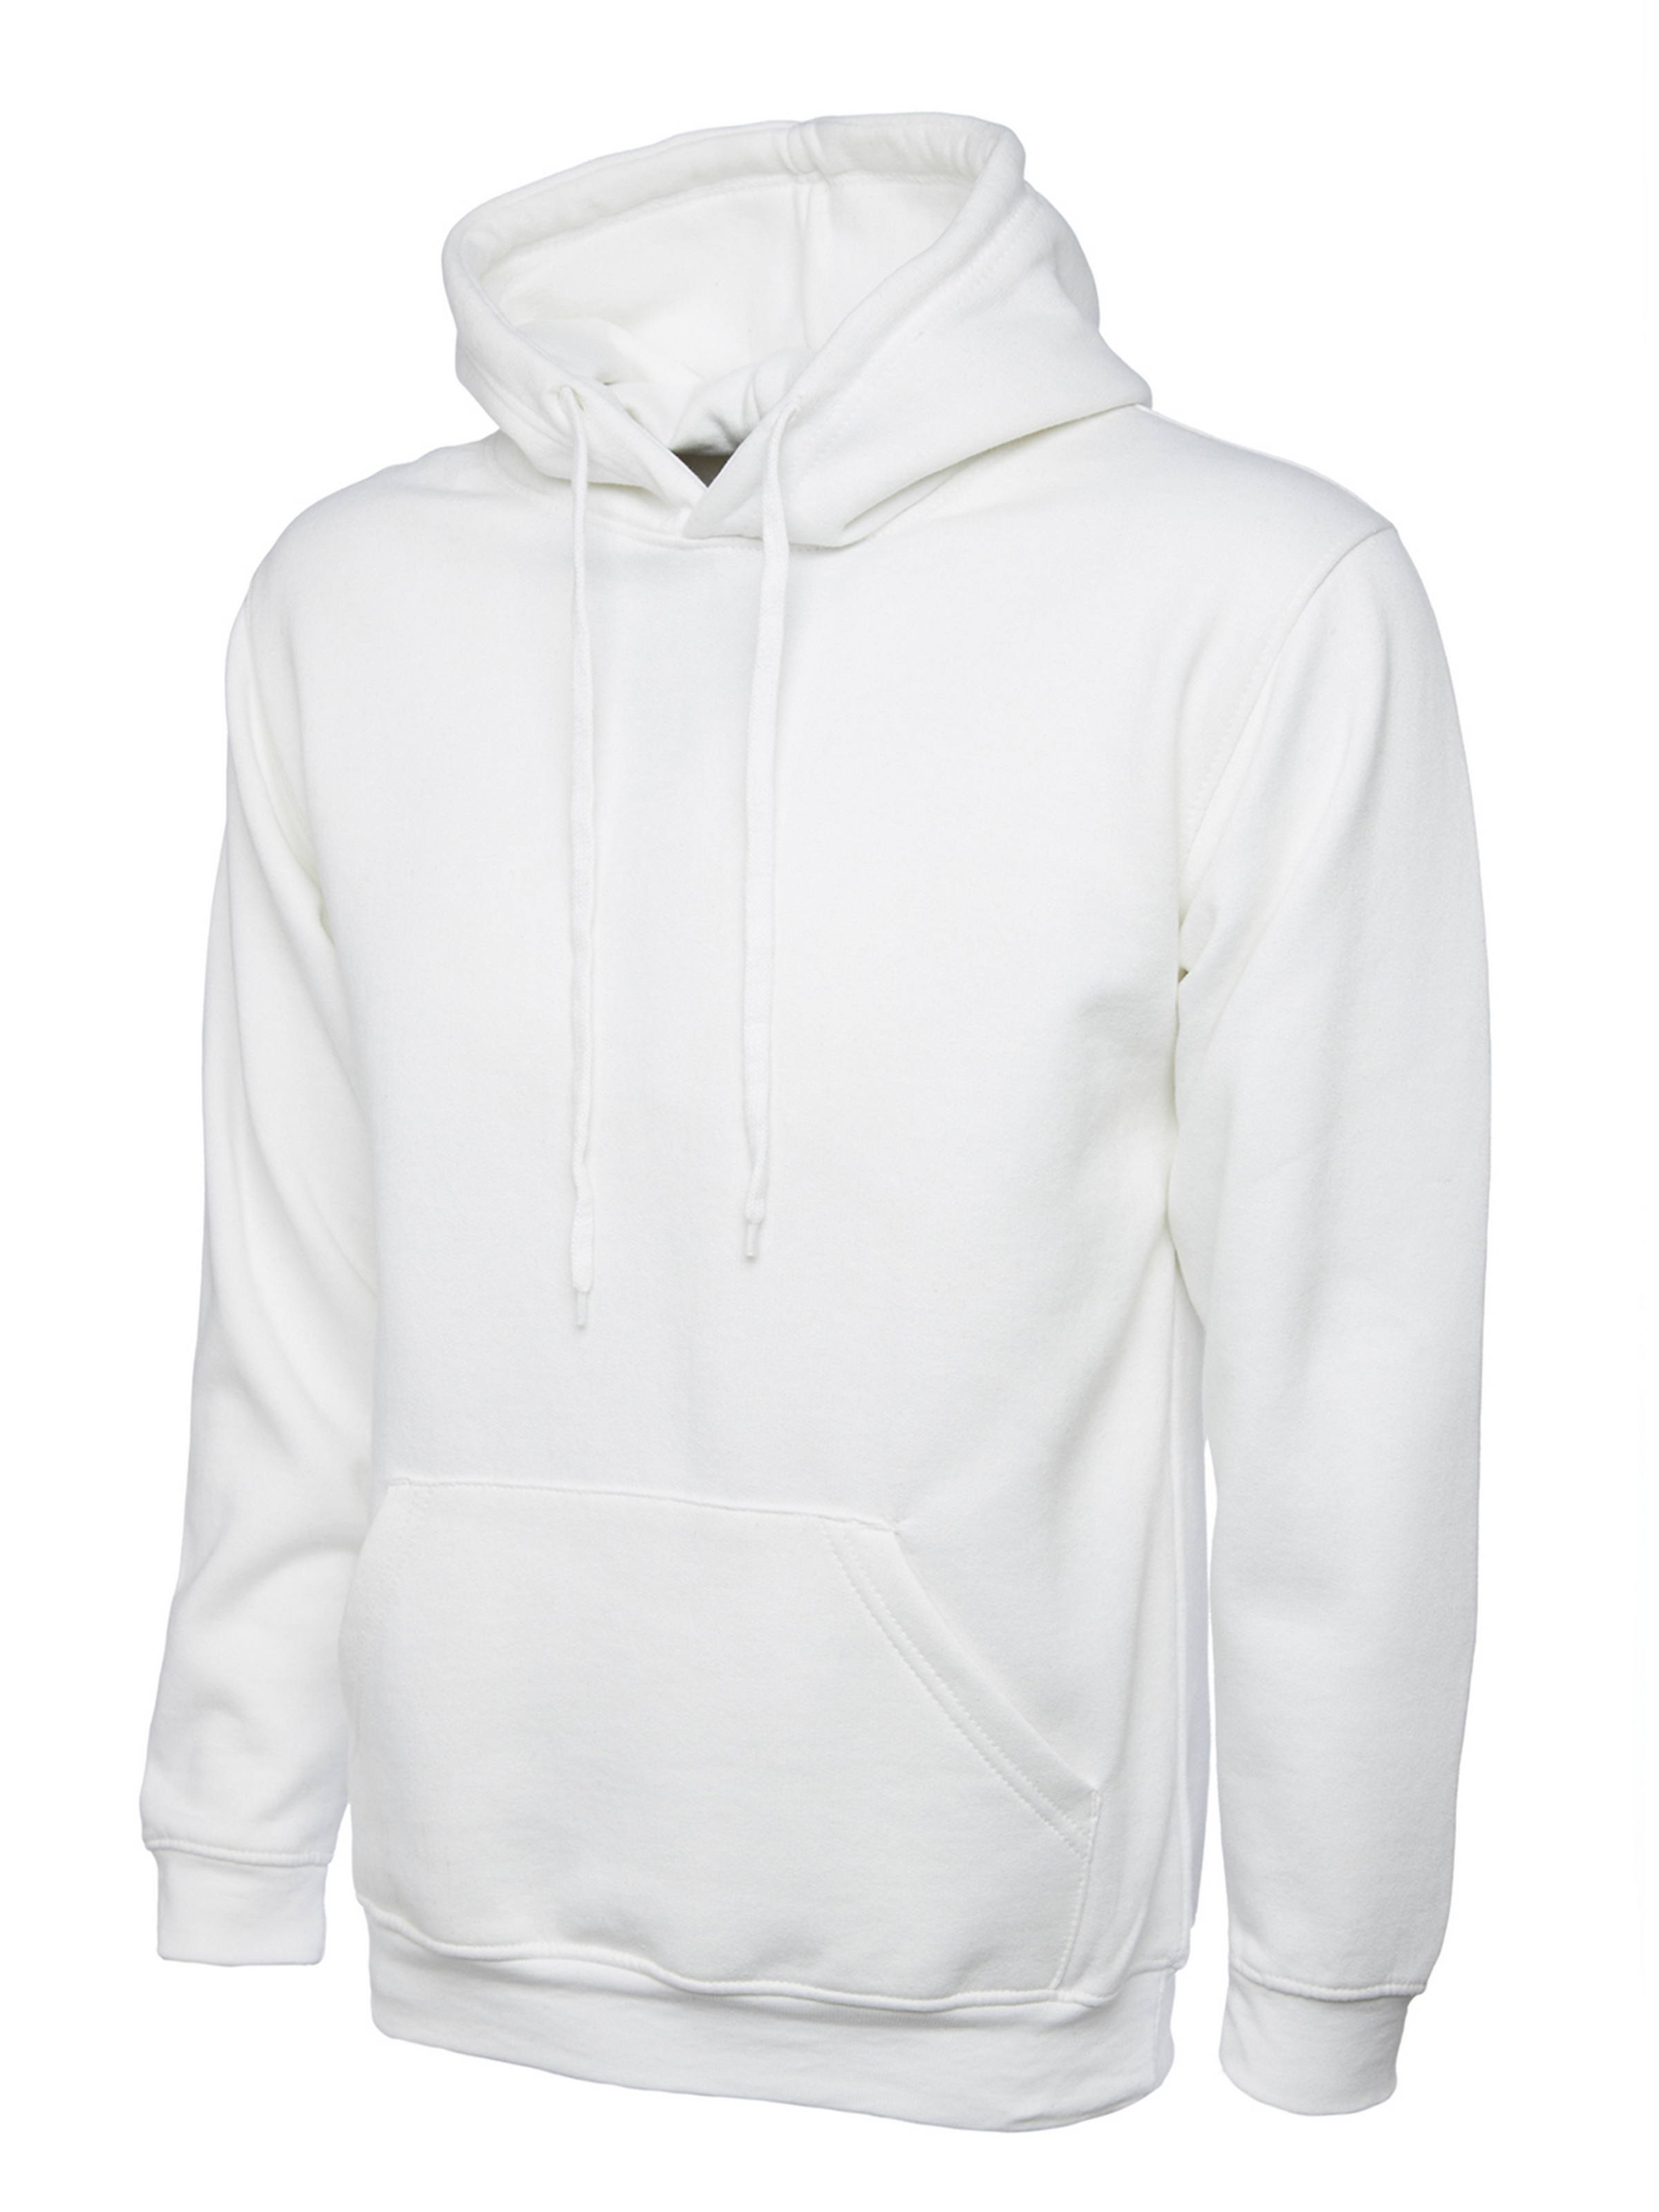 UNEEK UC502 CLASSIC HOODED SWEATSHIRT